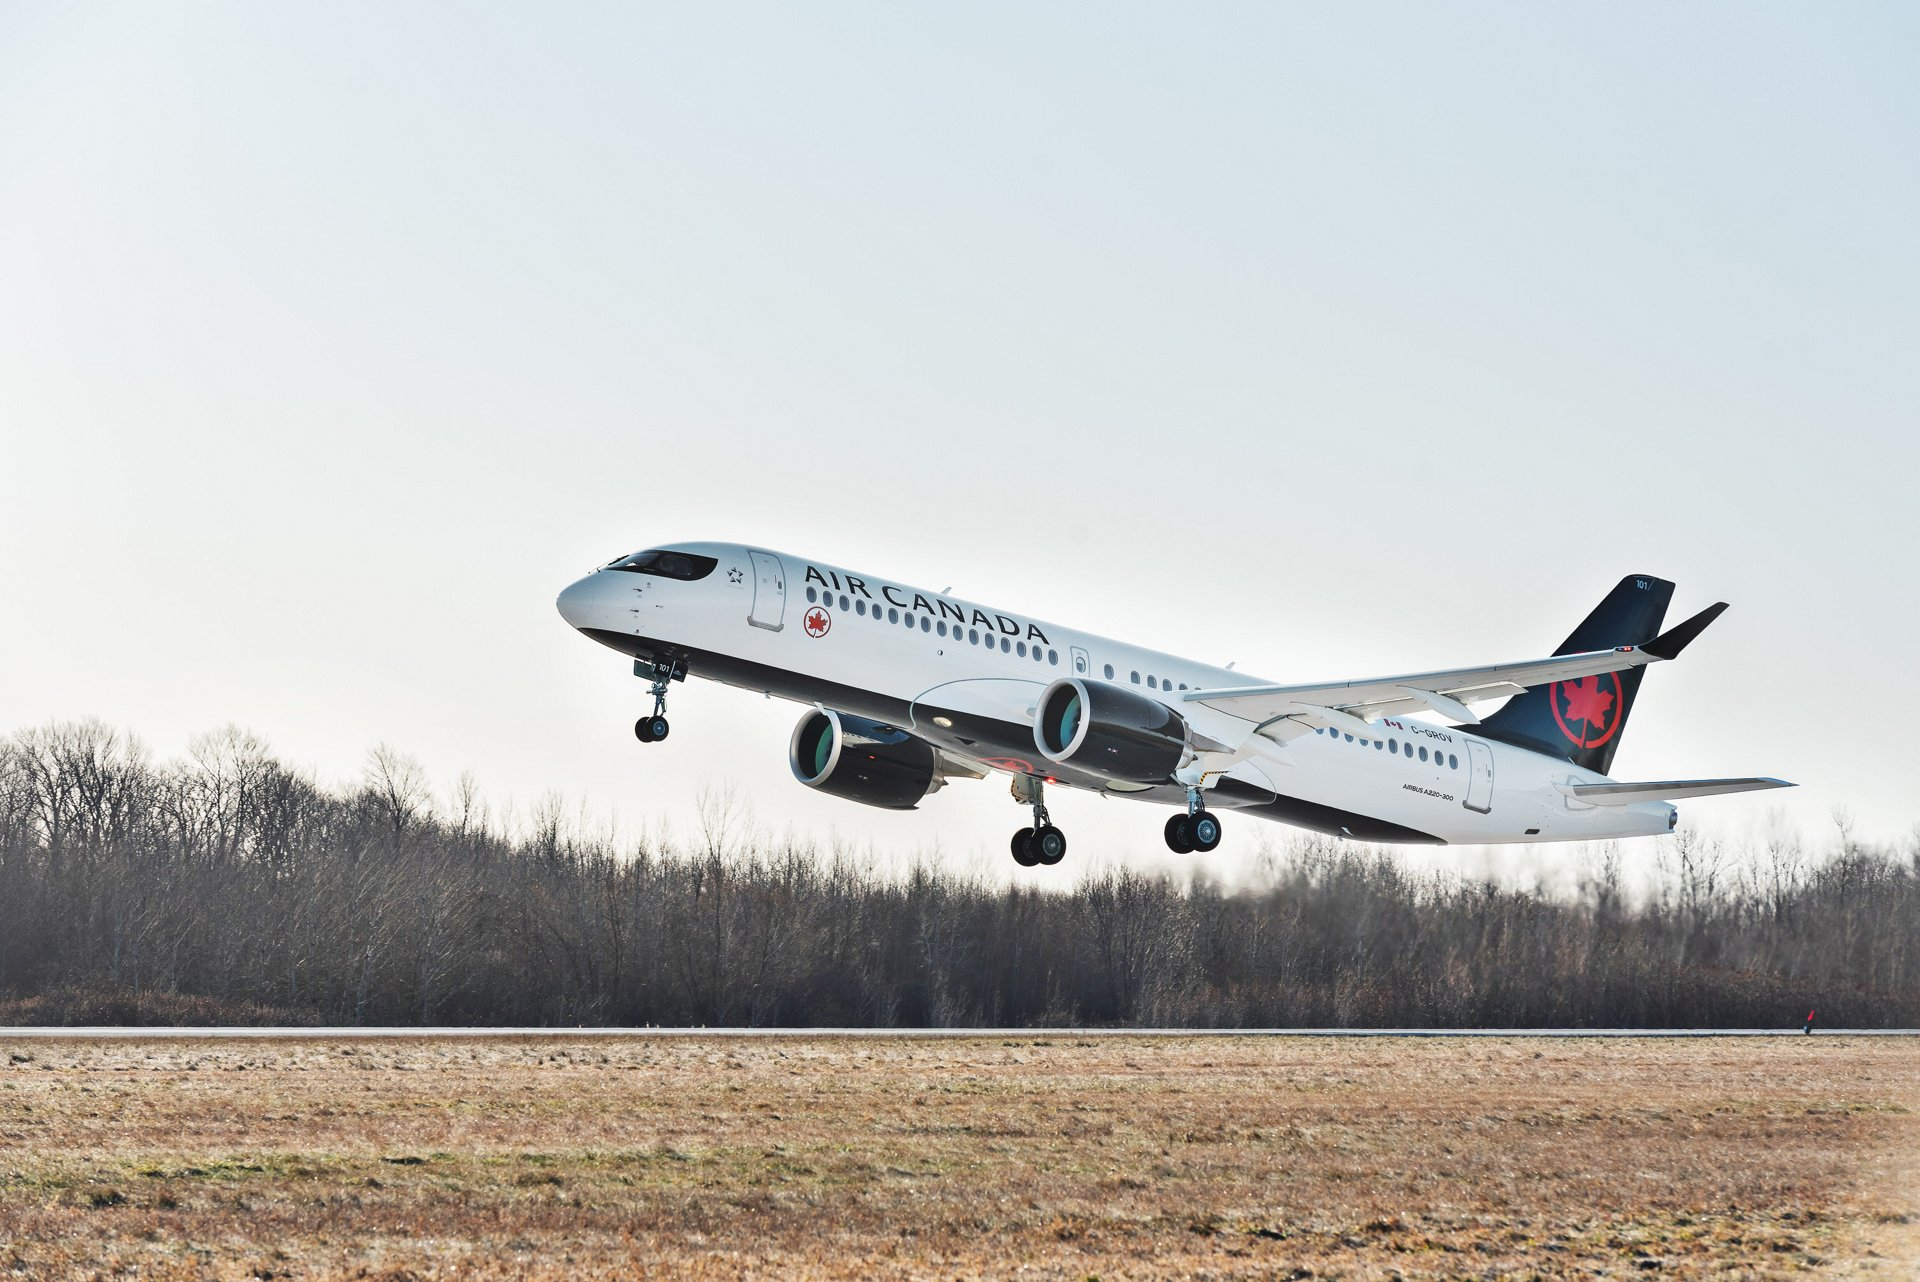 The first A220-300 delivered to Air Canada will enter service in January 2020